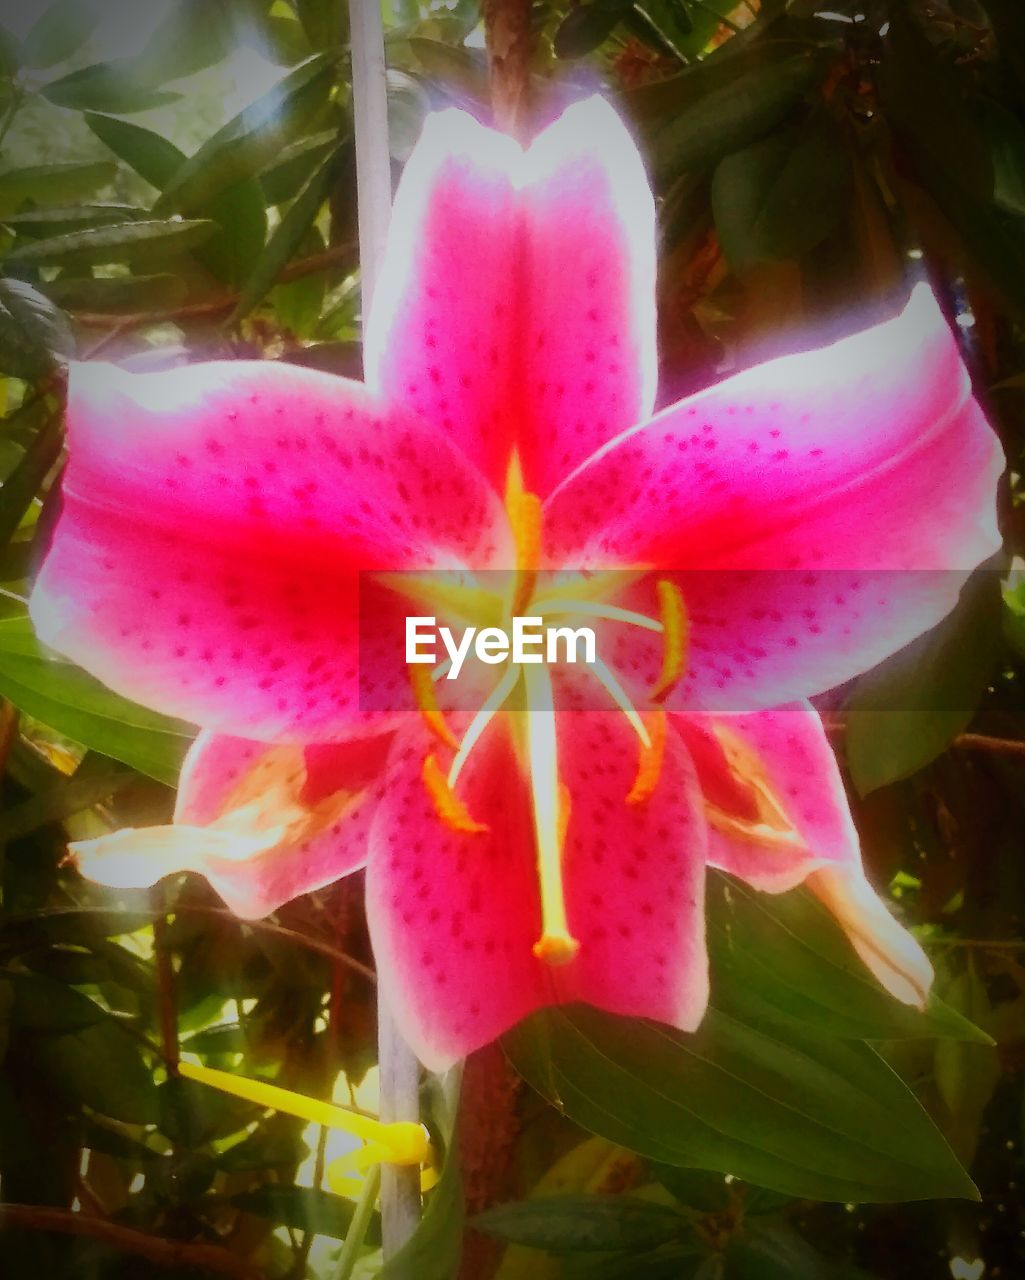 flower, petal, beauty in nature, growth, fragility, nature, pink color, flower head, freshness, close-up, no people, plant, day, outdoors, blooming